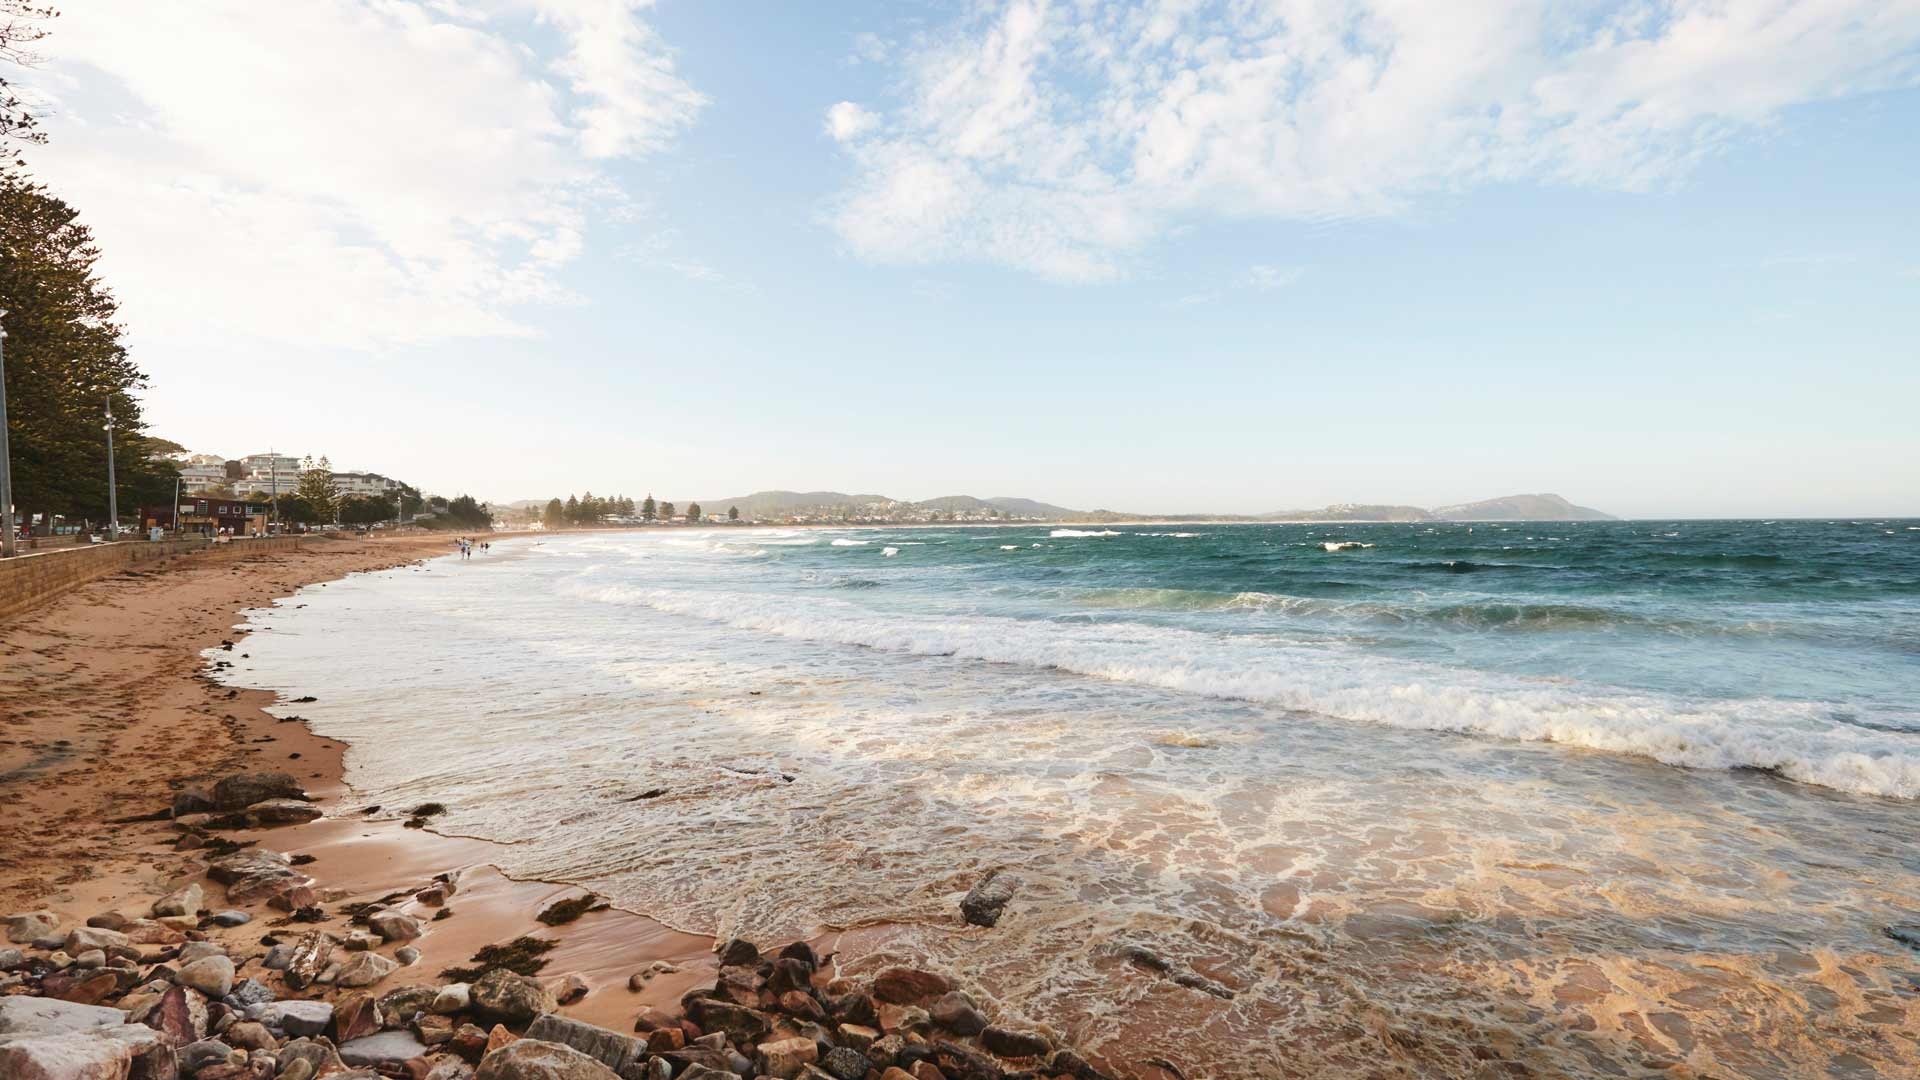 NSW Could Soon Be Home to a Huge New Marine Park Stretching Between Newcastle and Wollongong